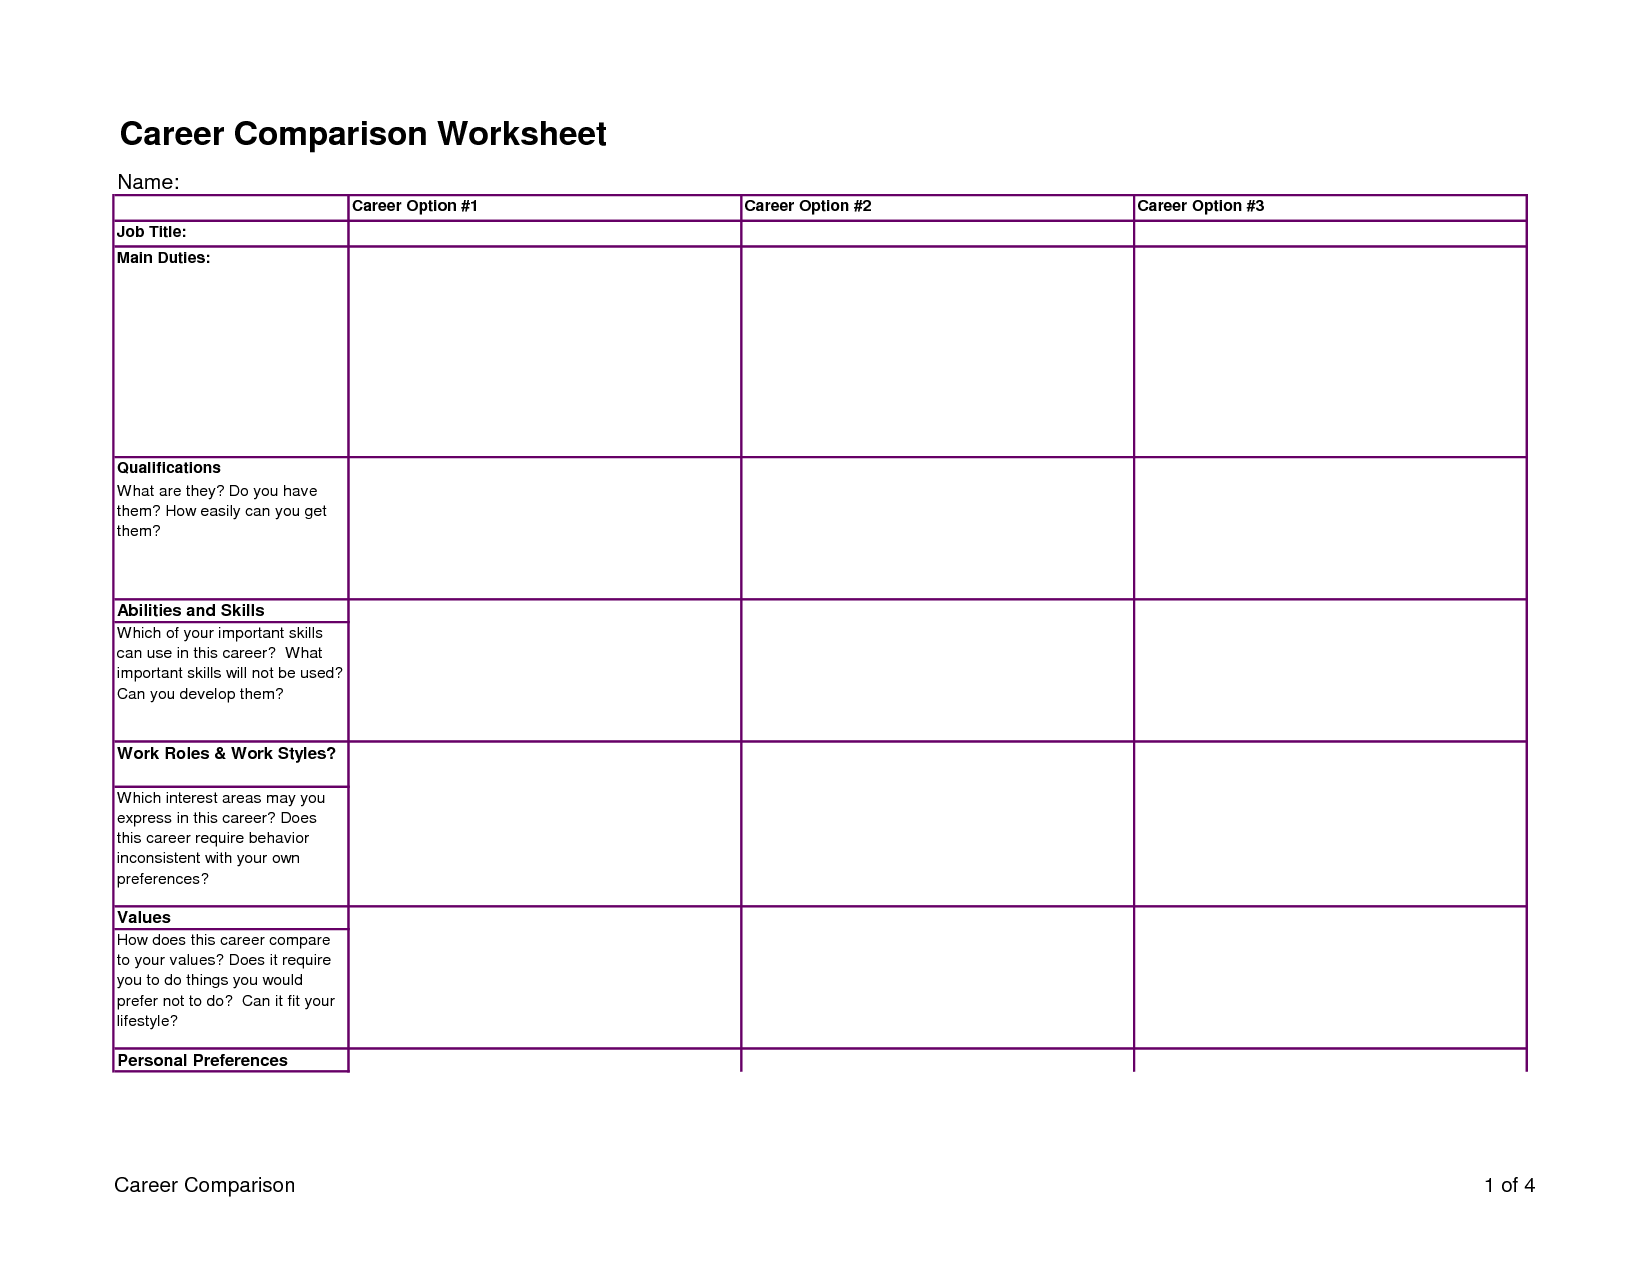 worksheet Motivation Worksheets worksheet motivational interviewing worksheets pdf sample customer service change plan w orksheet se